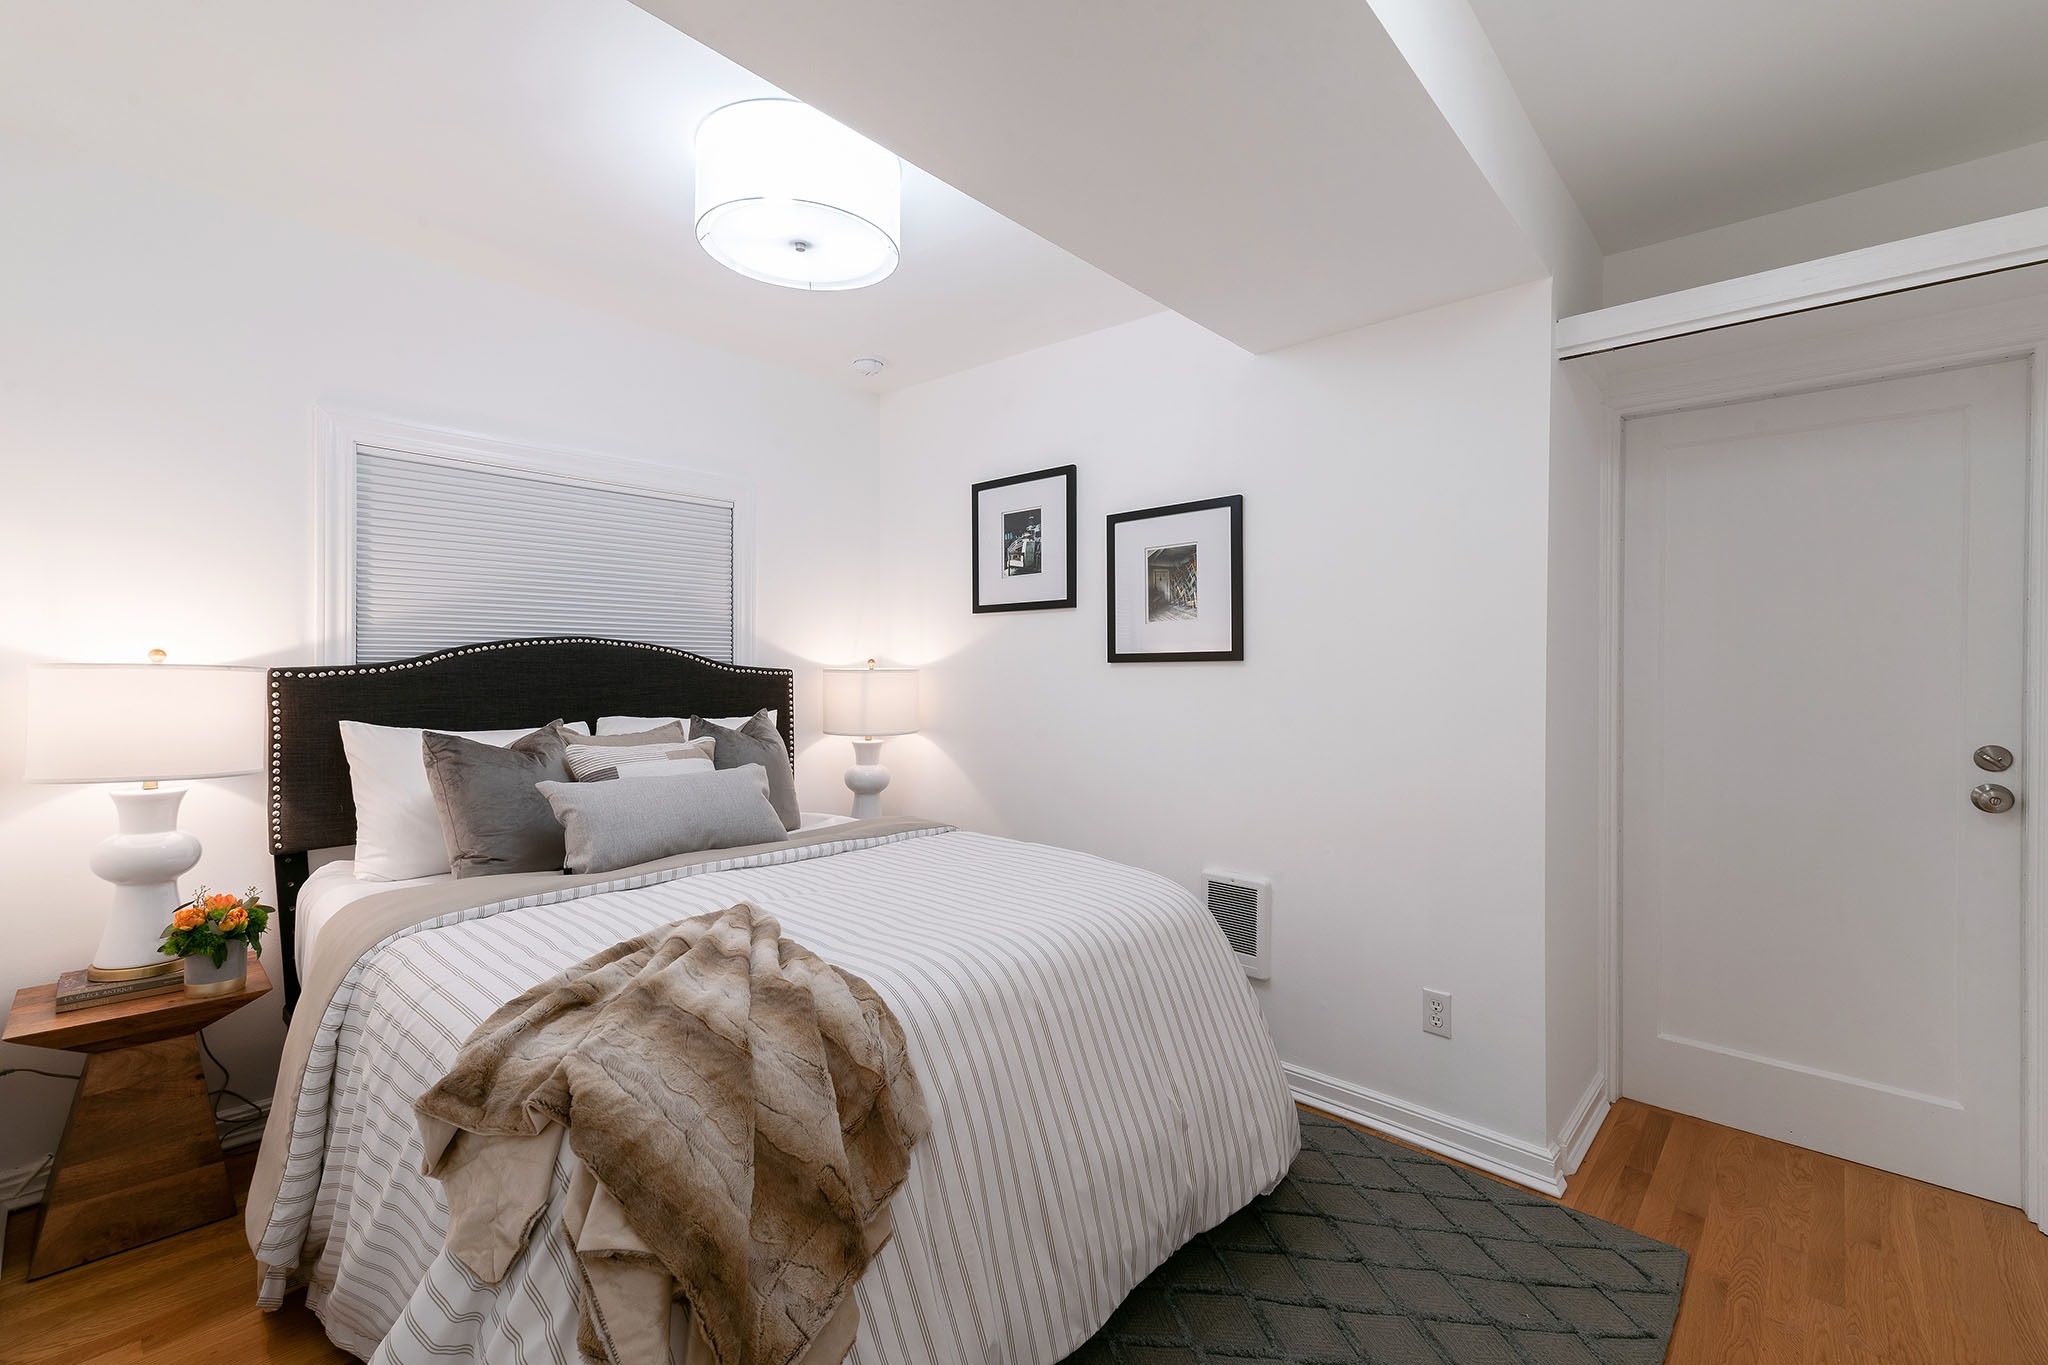 Different view of bedroom - SF home